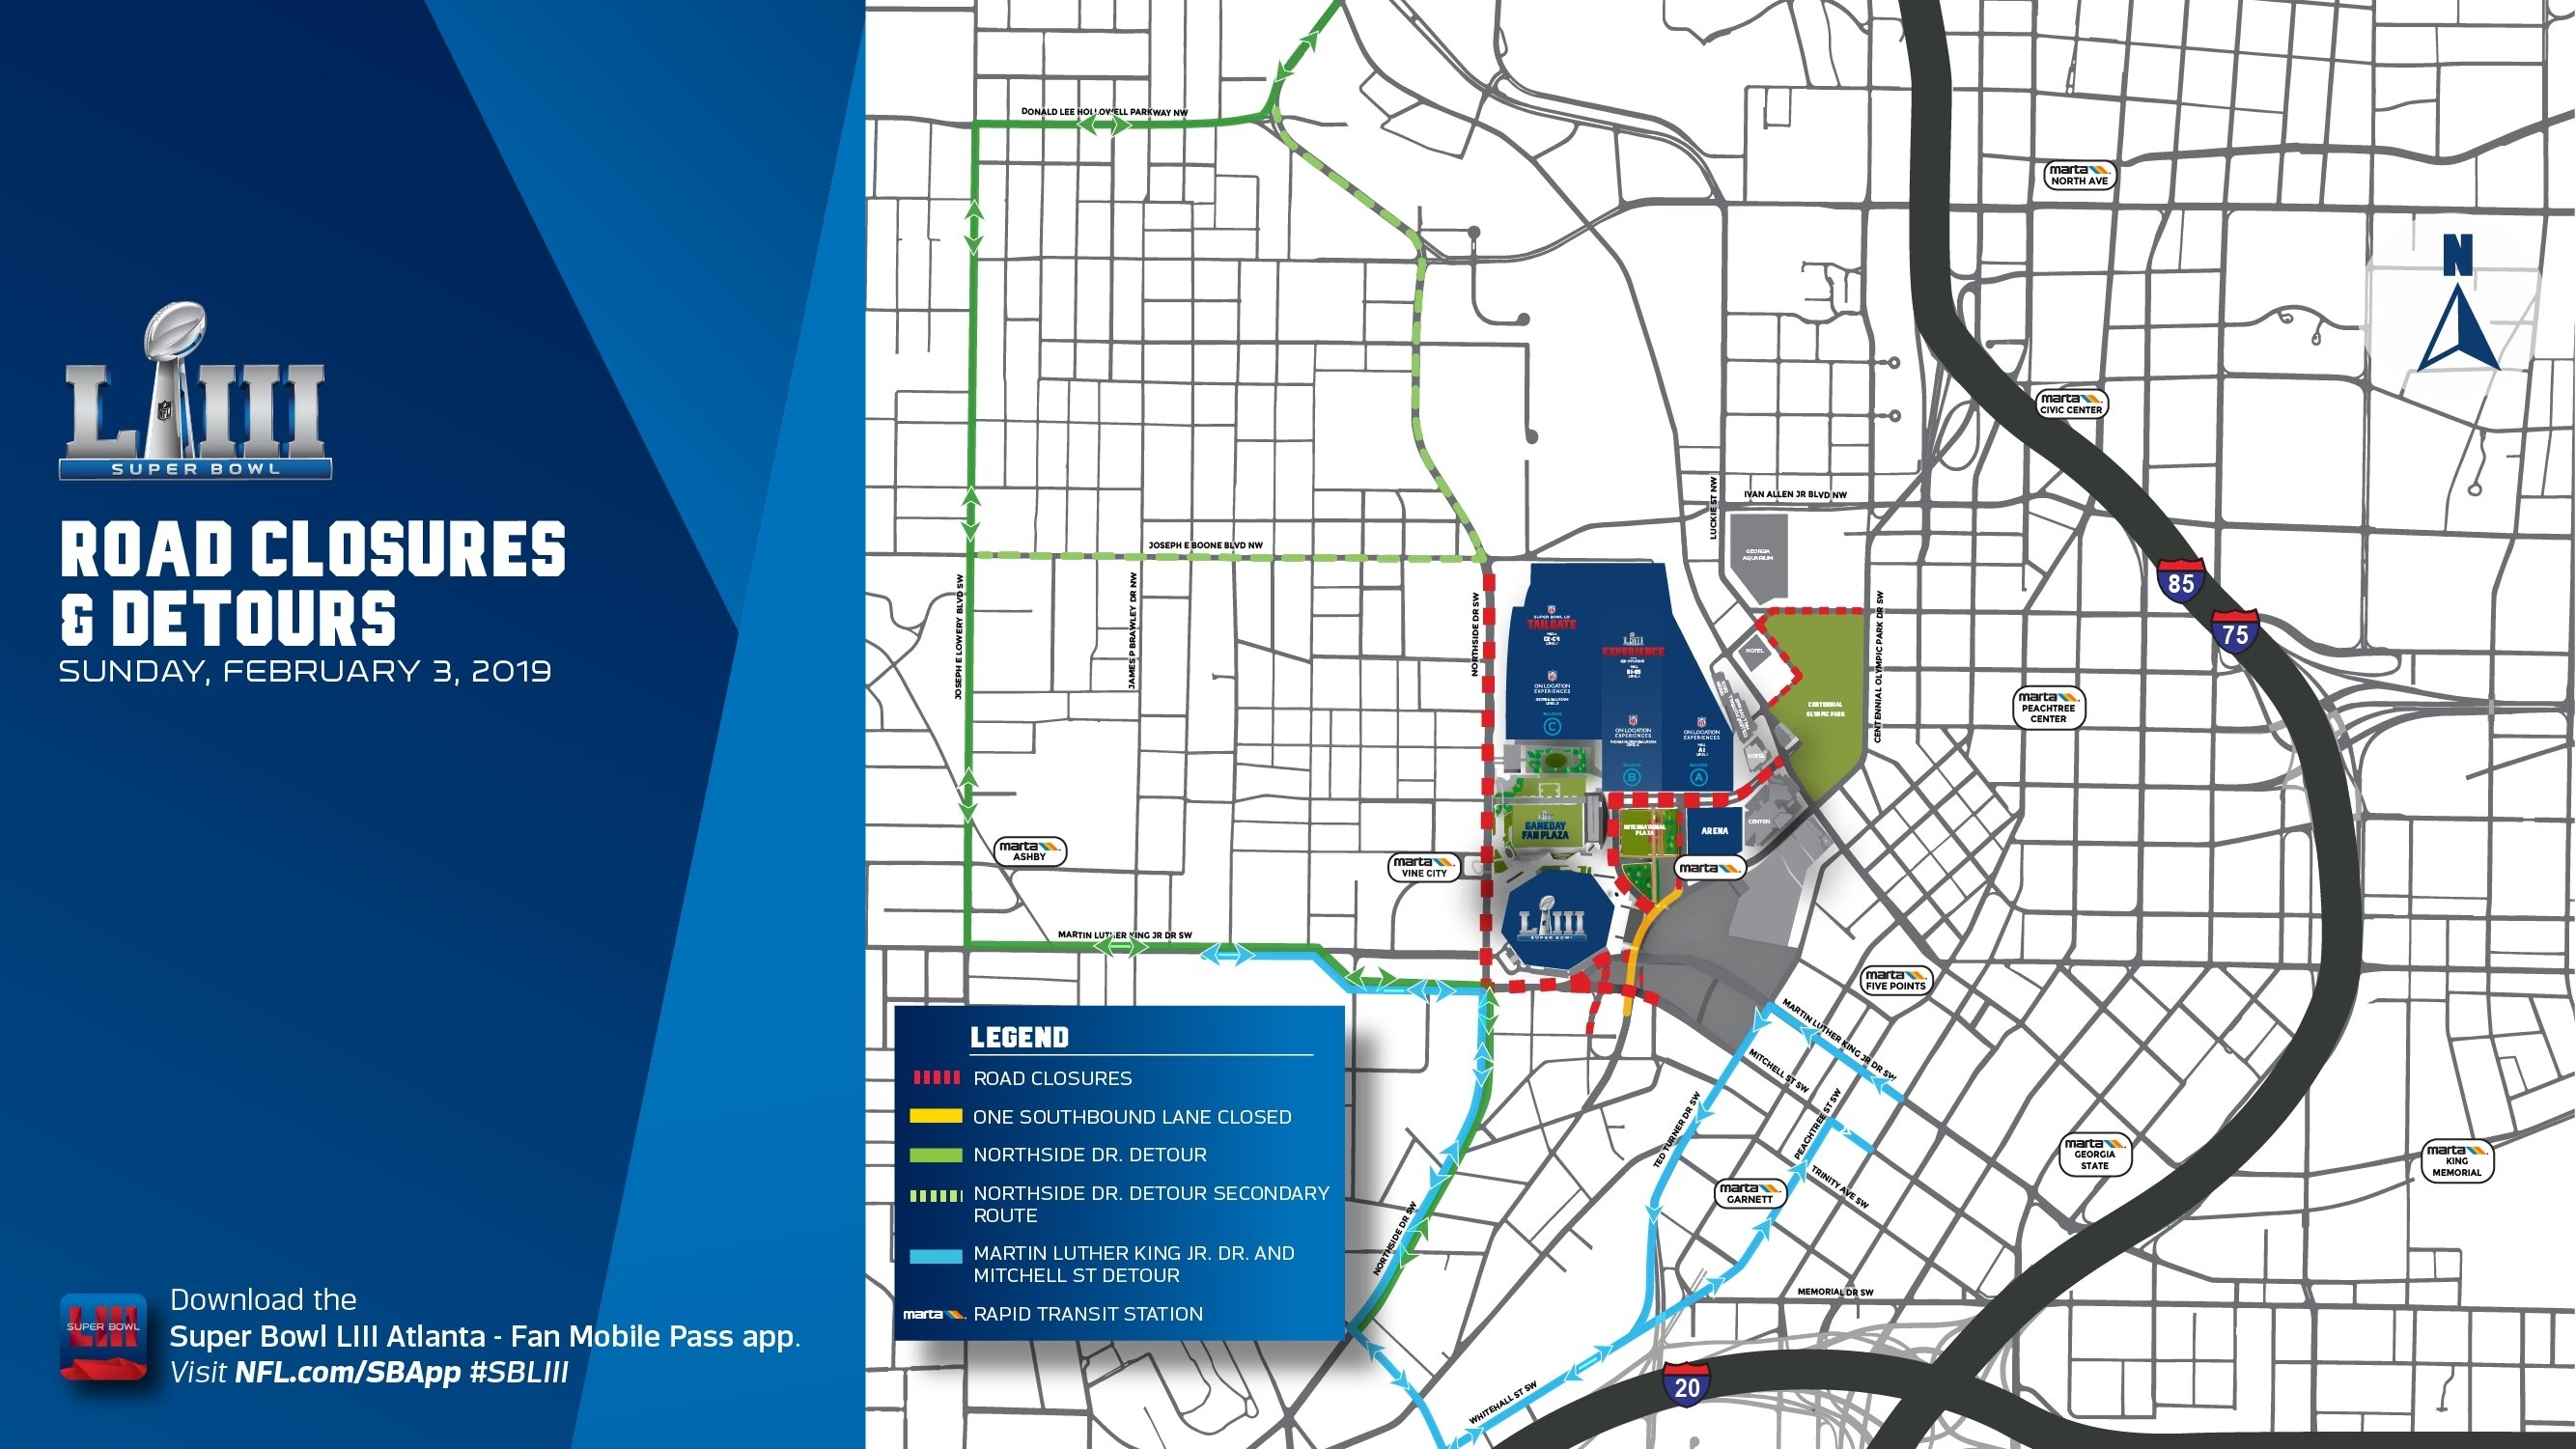 Gameday-Road-Closure-Map Copy - Mercedes Benz Stadium intended for Super Bowl Road Map